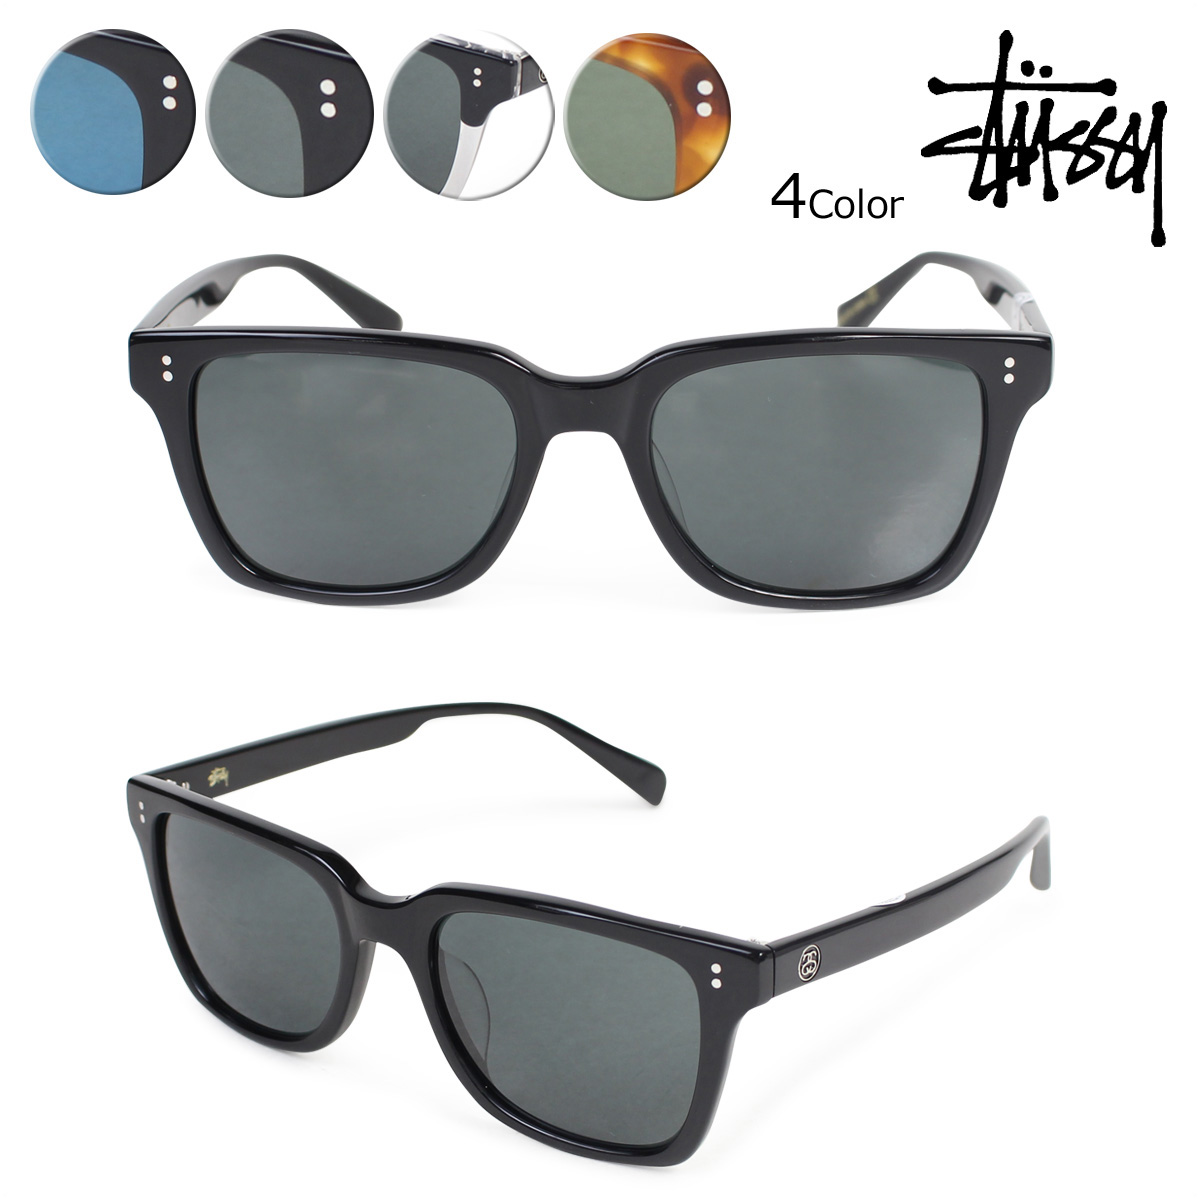 ステューシー STUSSY sunglasses men gap Dis UV cut Angelo ANGELO EYEGEAR 140014 4 color [6/15 Shinnyu load]